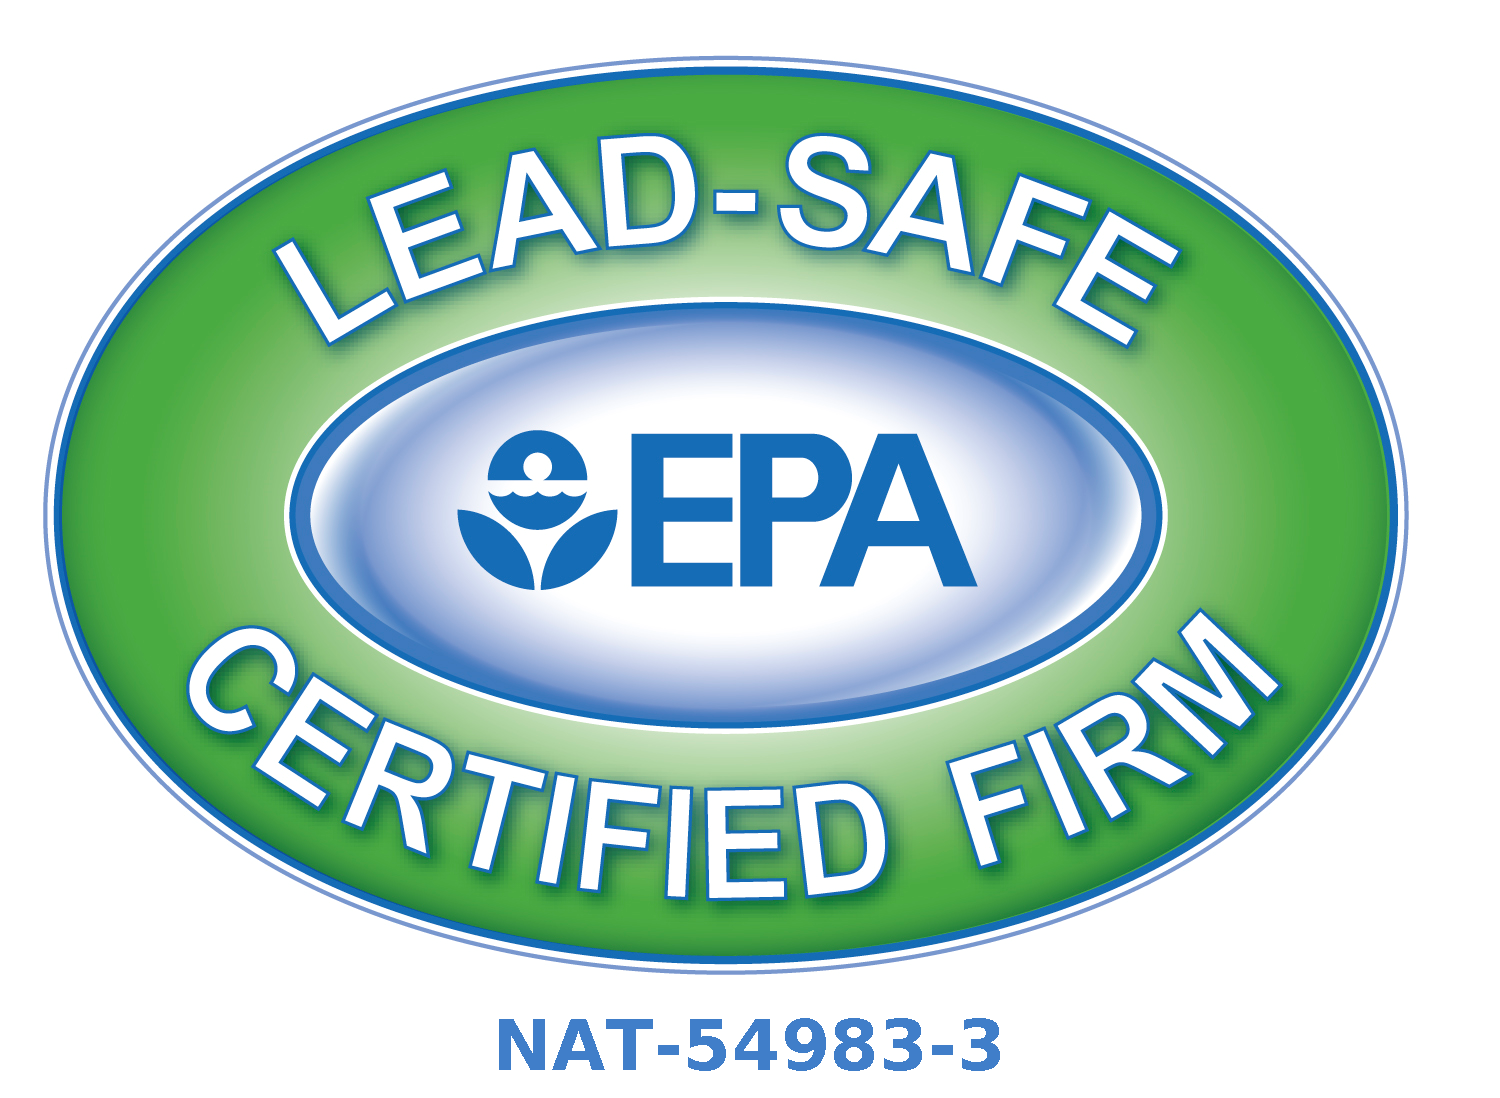 EPA Leadsafe Logo NAT-54983-3